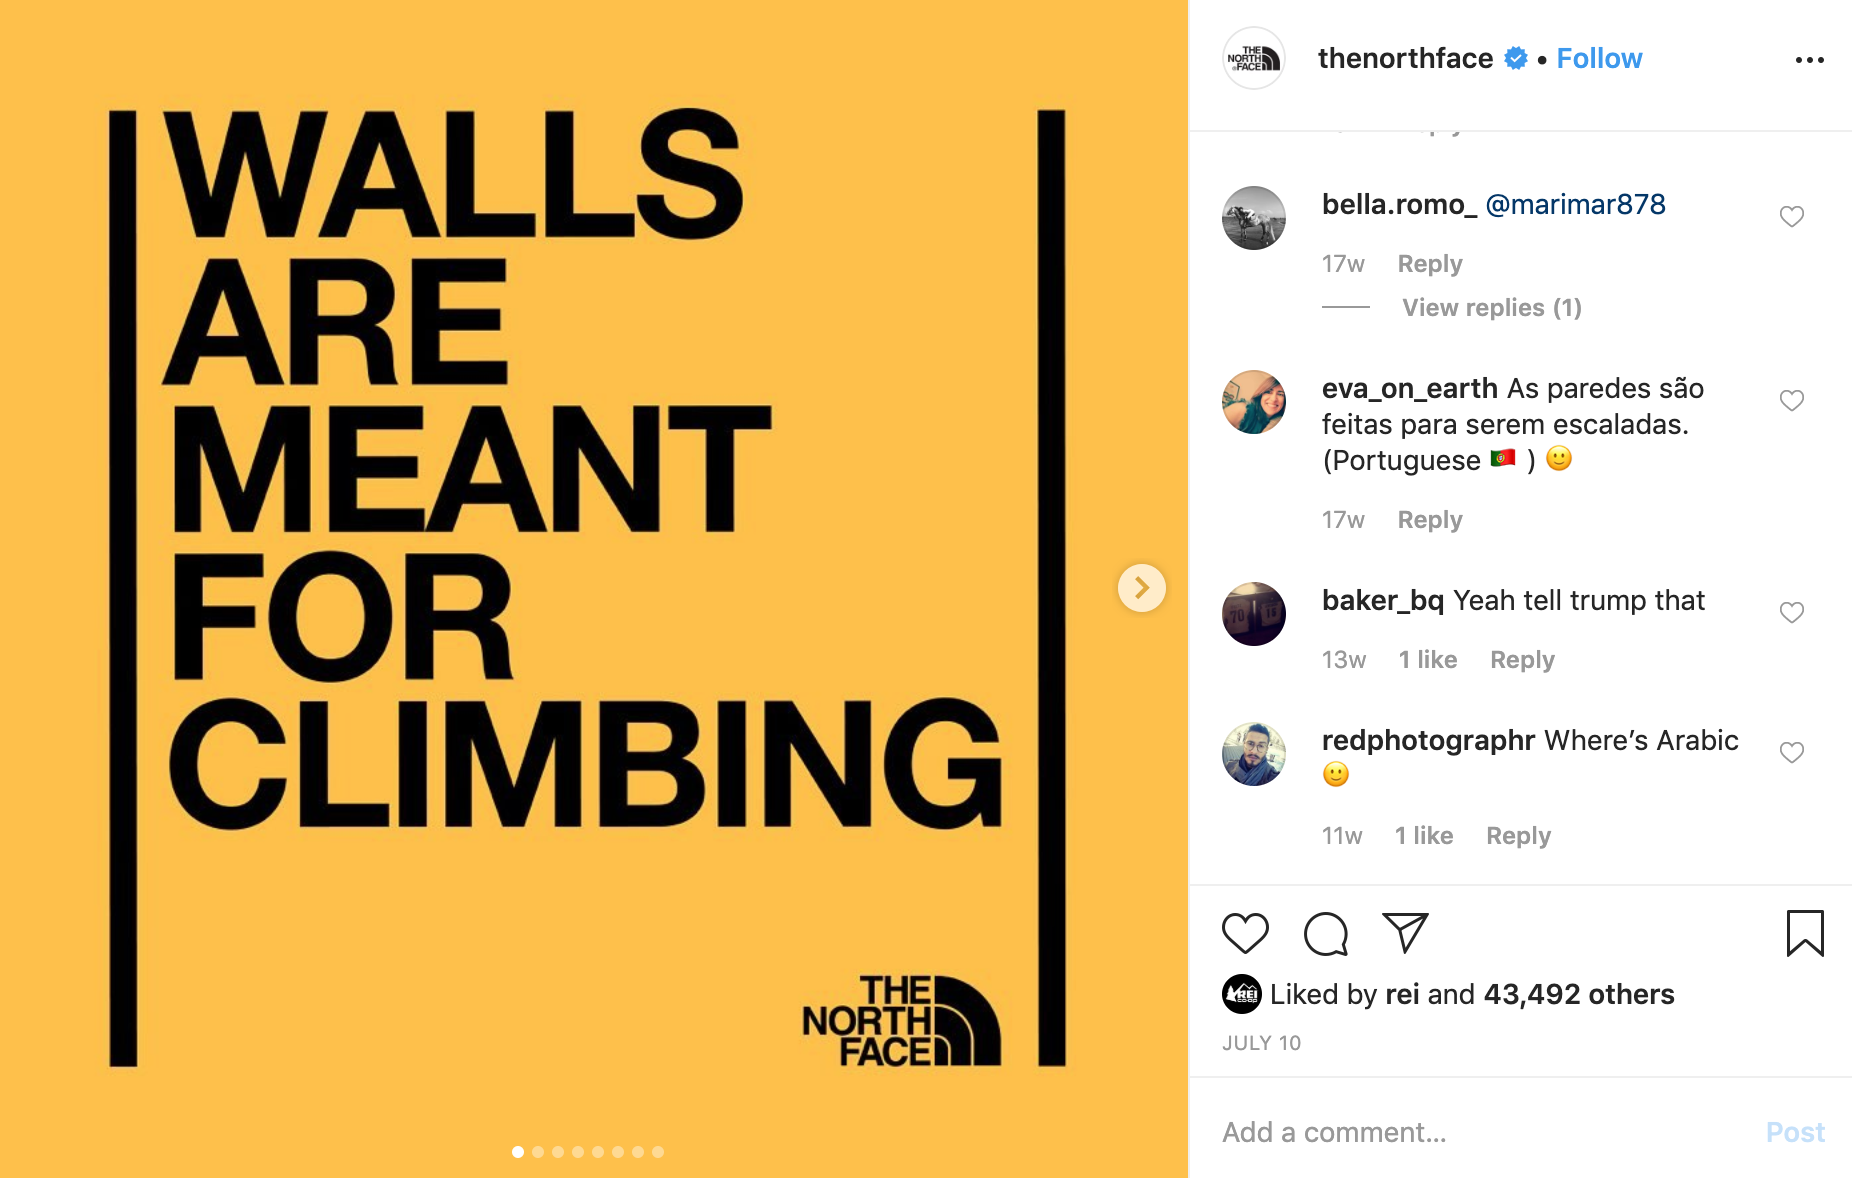 Walls are meant for climbing instagram post for The North Face